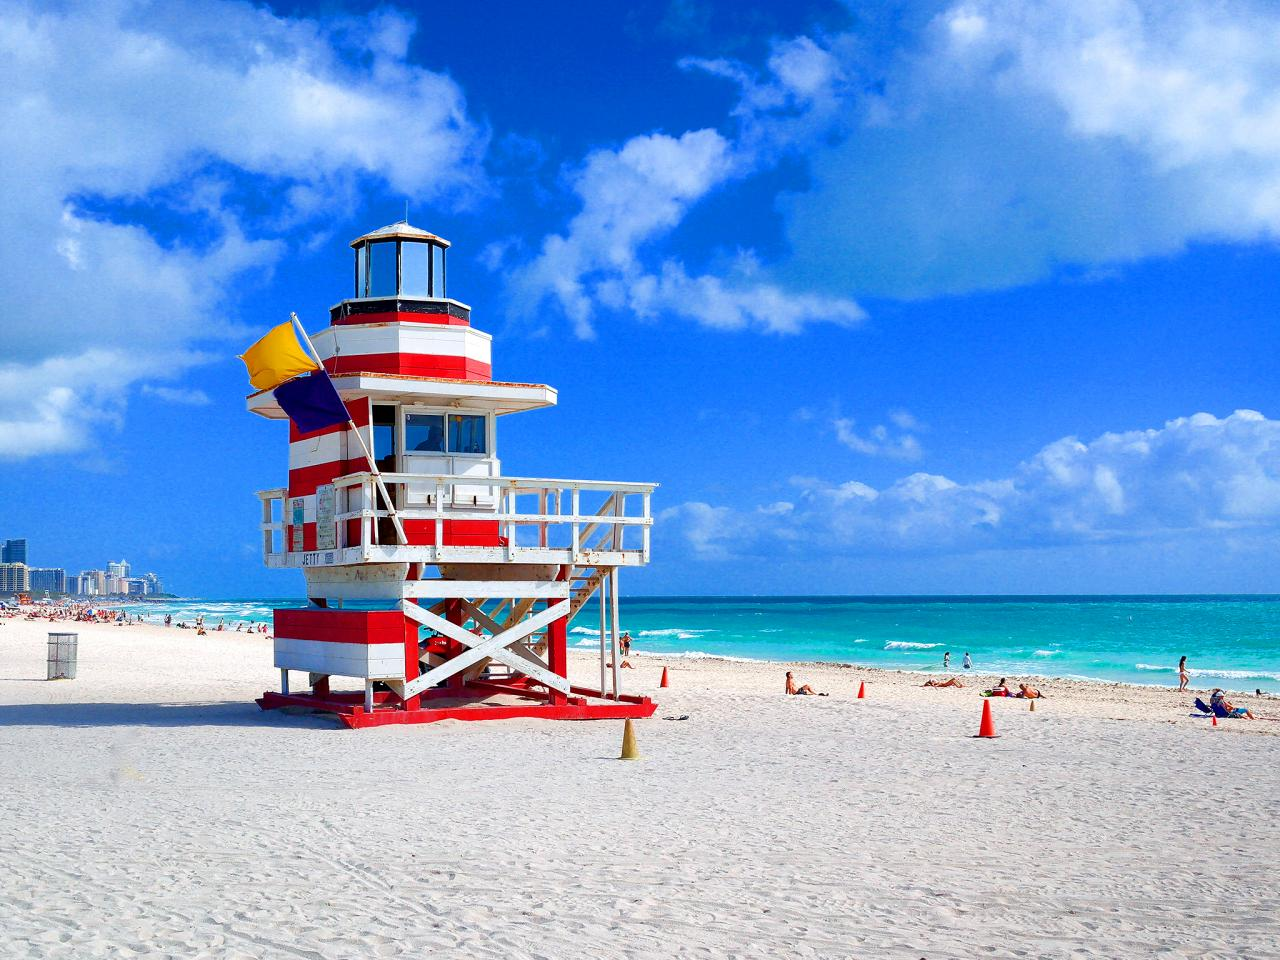 South Beach Regularly Ranks Among The World S Best Beaches With Good Reason Sprawling For 2 Plus Miles Along Miami Southeastern Tip This Stretch